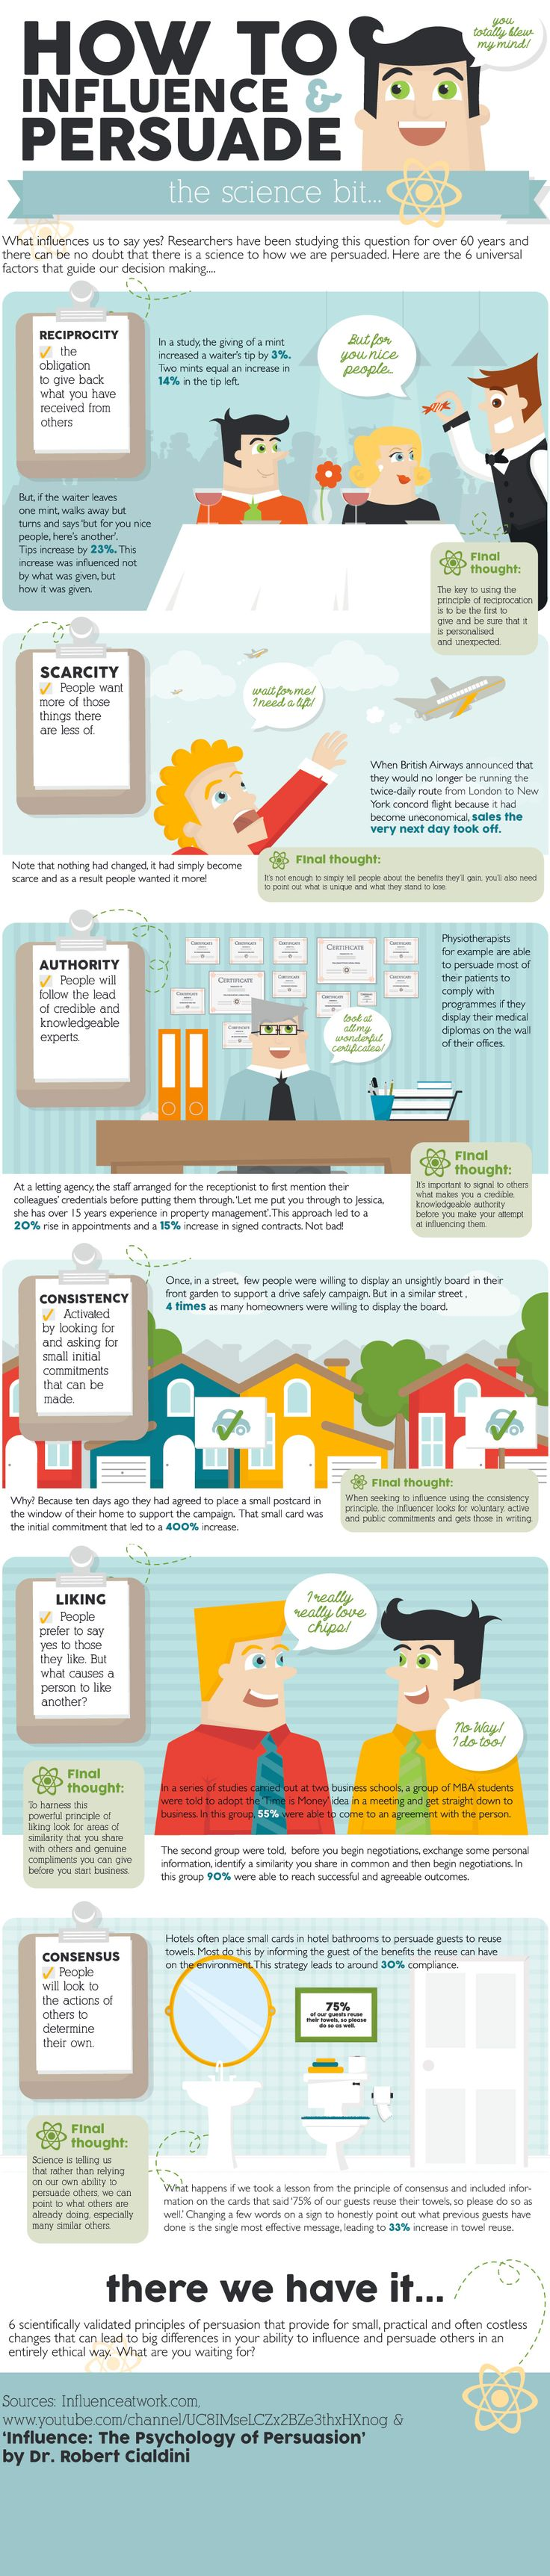 Elements of Persuasion Infographic